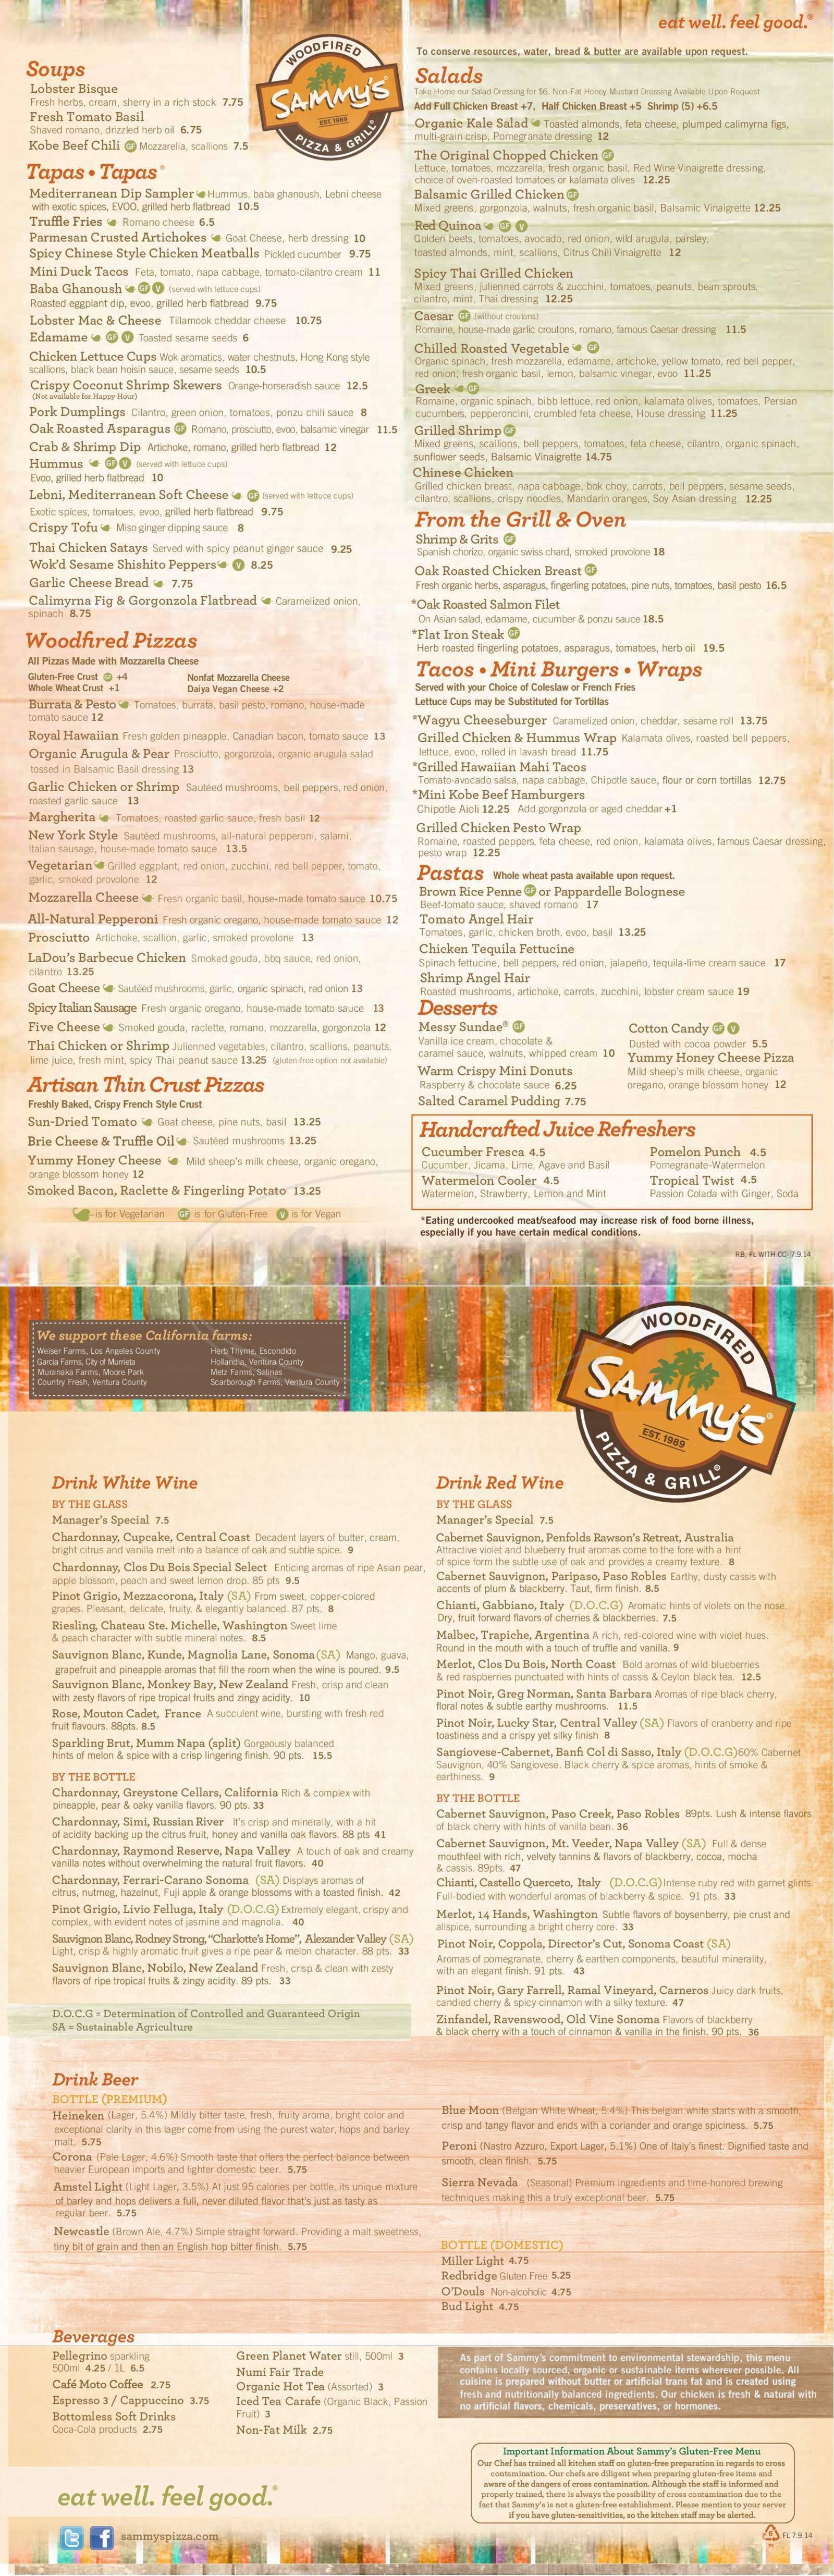 menu for Sammy's Woodfired Pizza and Grill